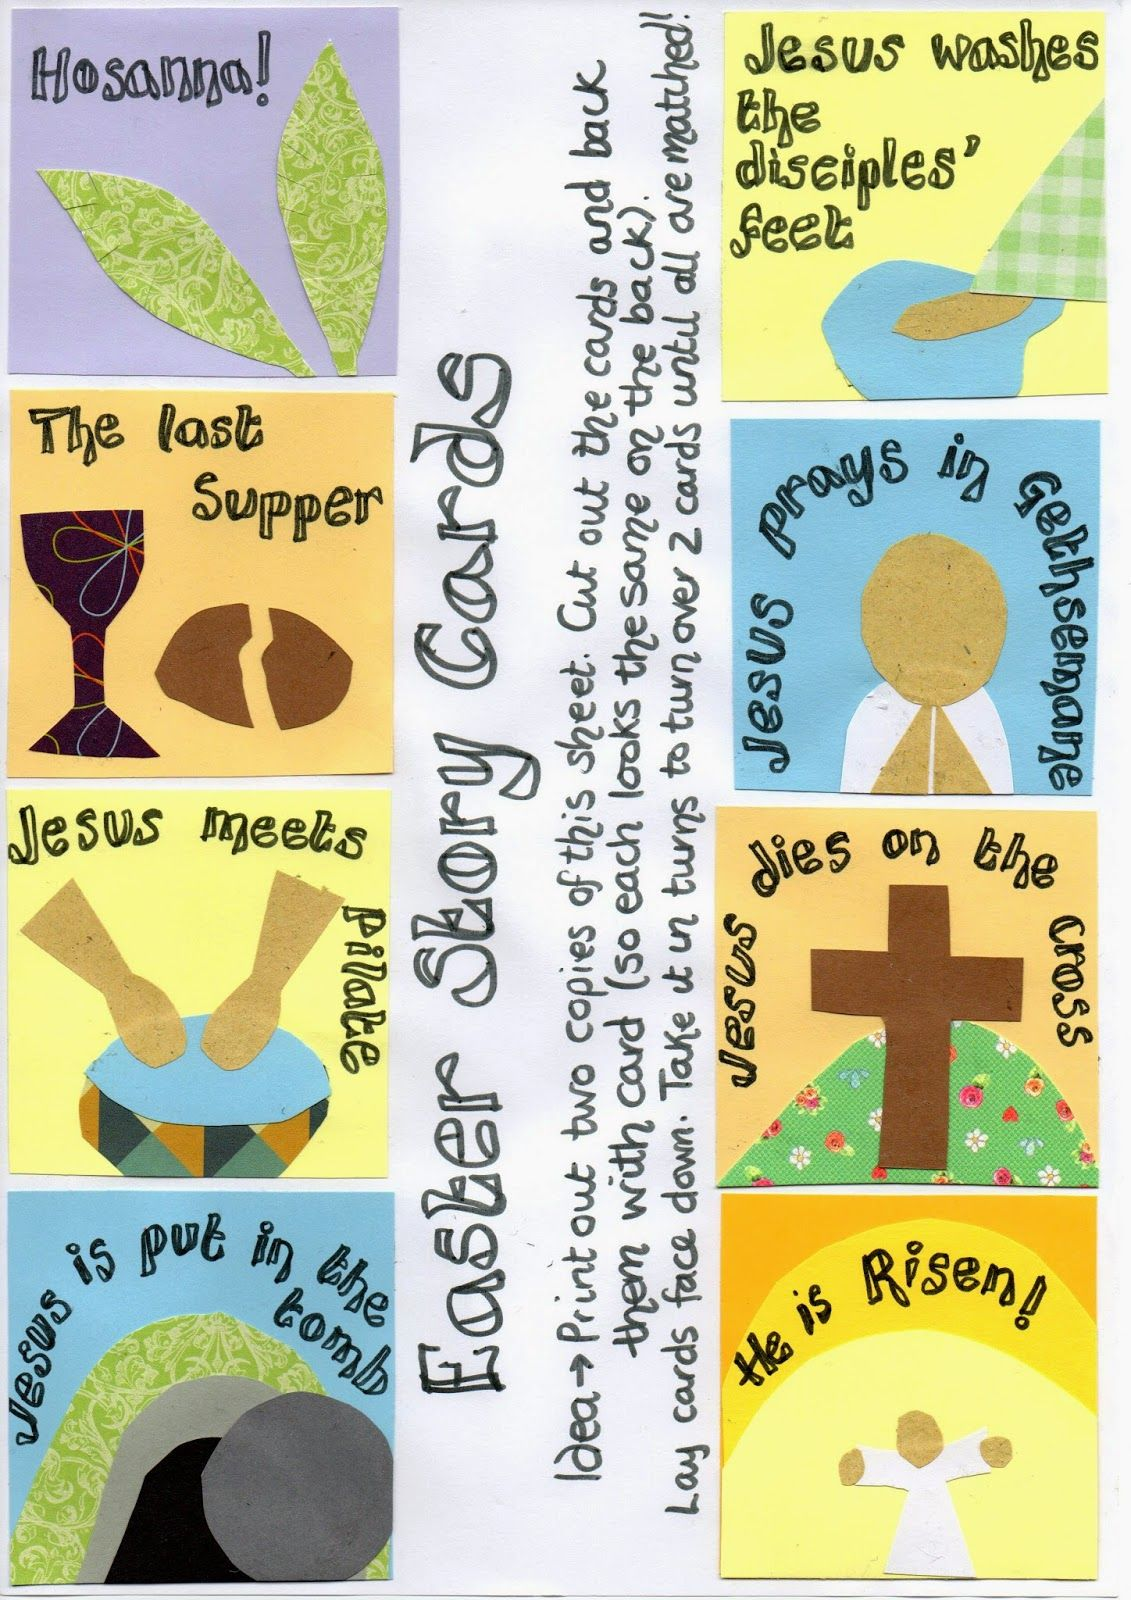 Exceptional image intended for holy week activities printable